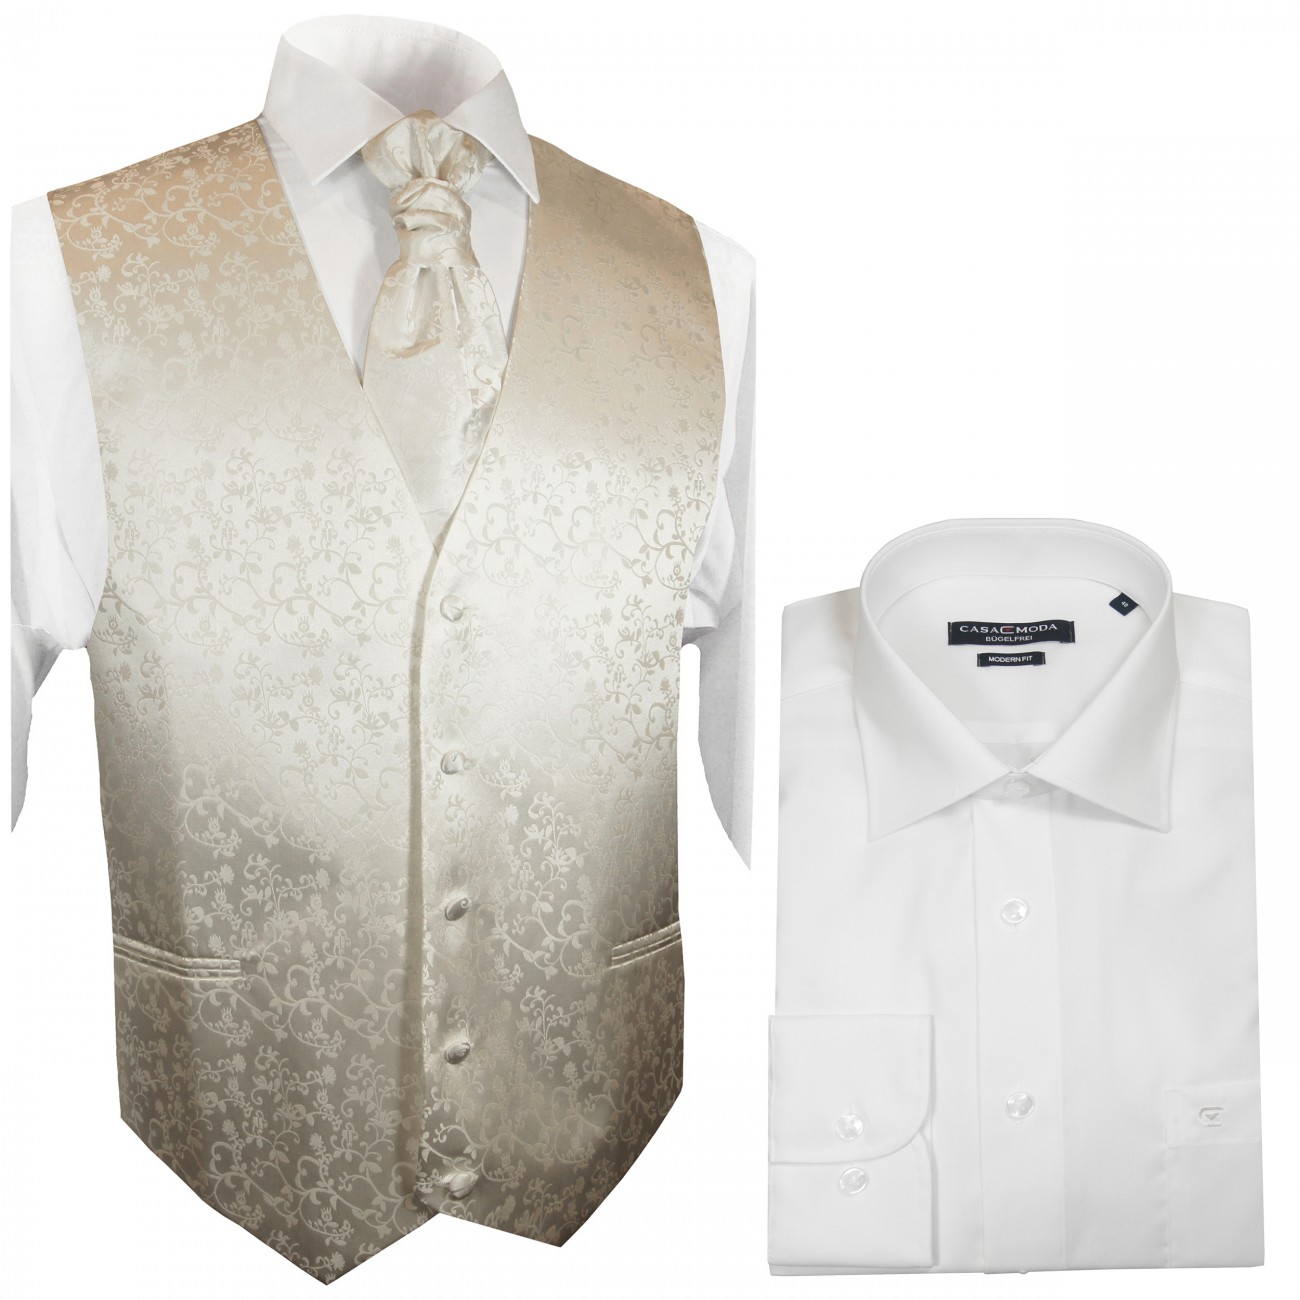 Wedding vest set with wedding shirt